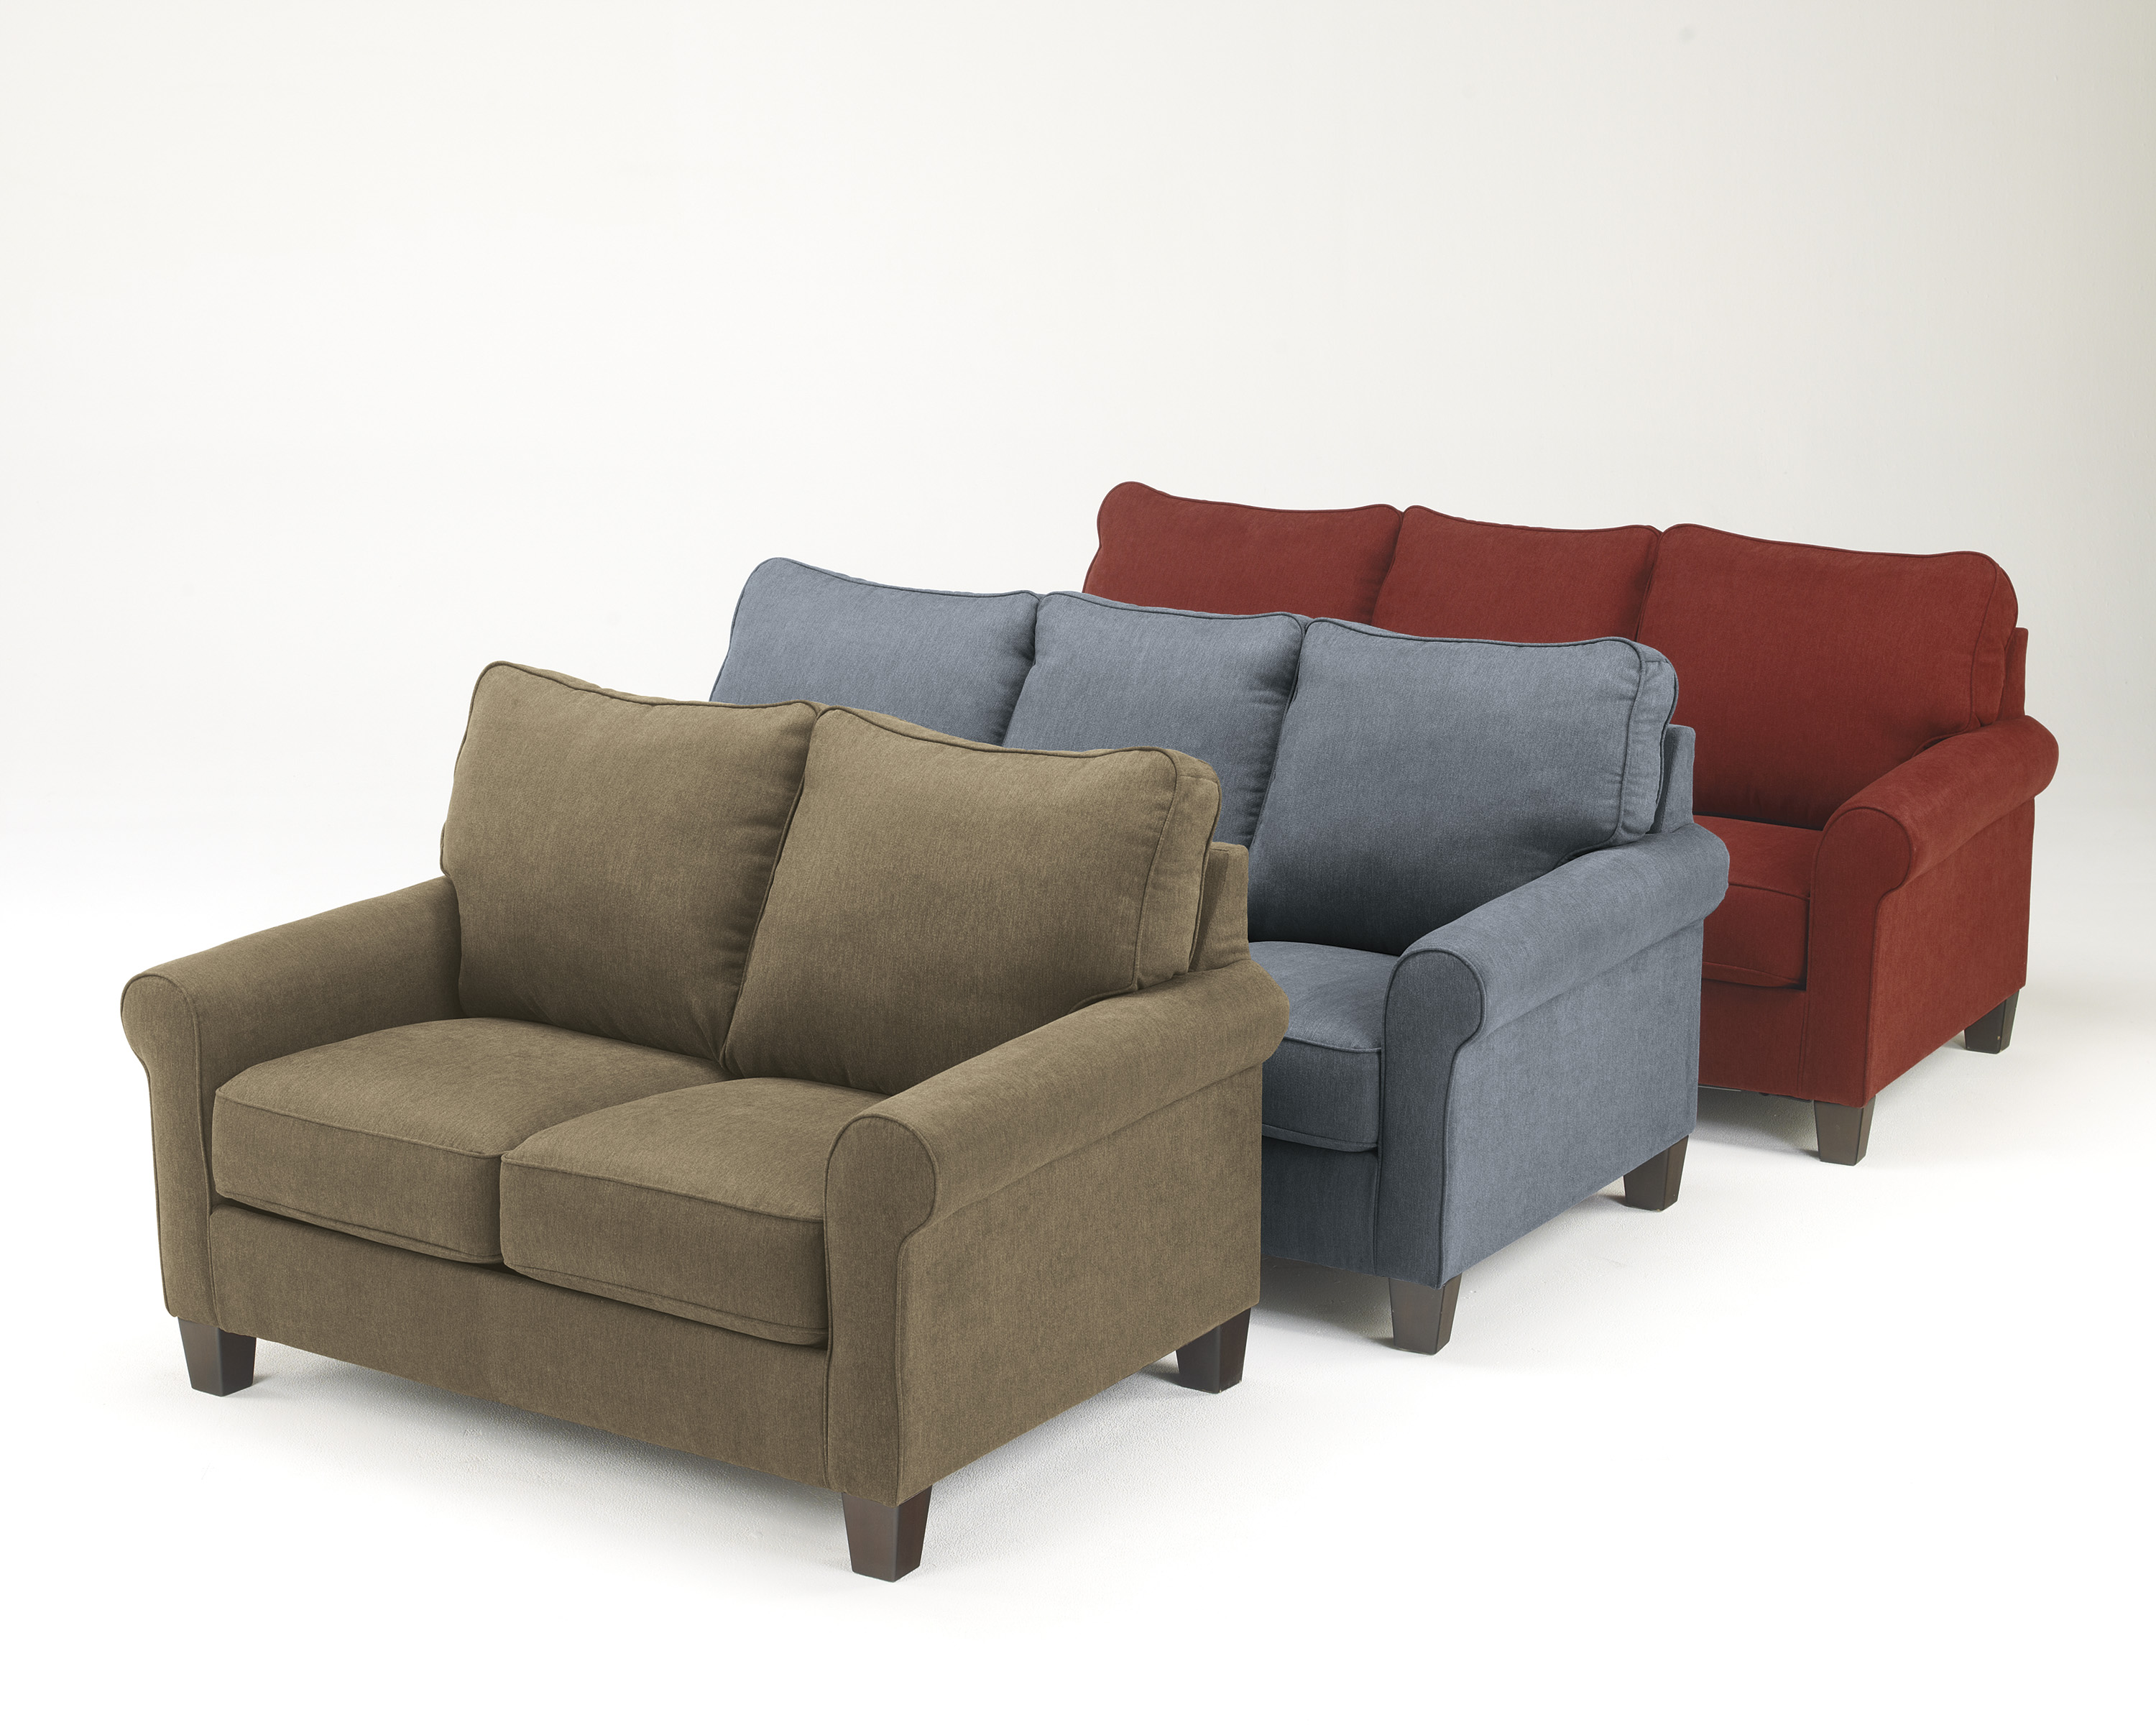 Lindseys Suite Deals Furniture Offers New Deals For Tax Season